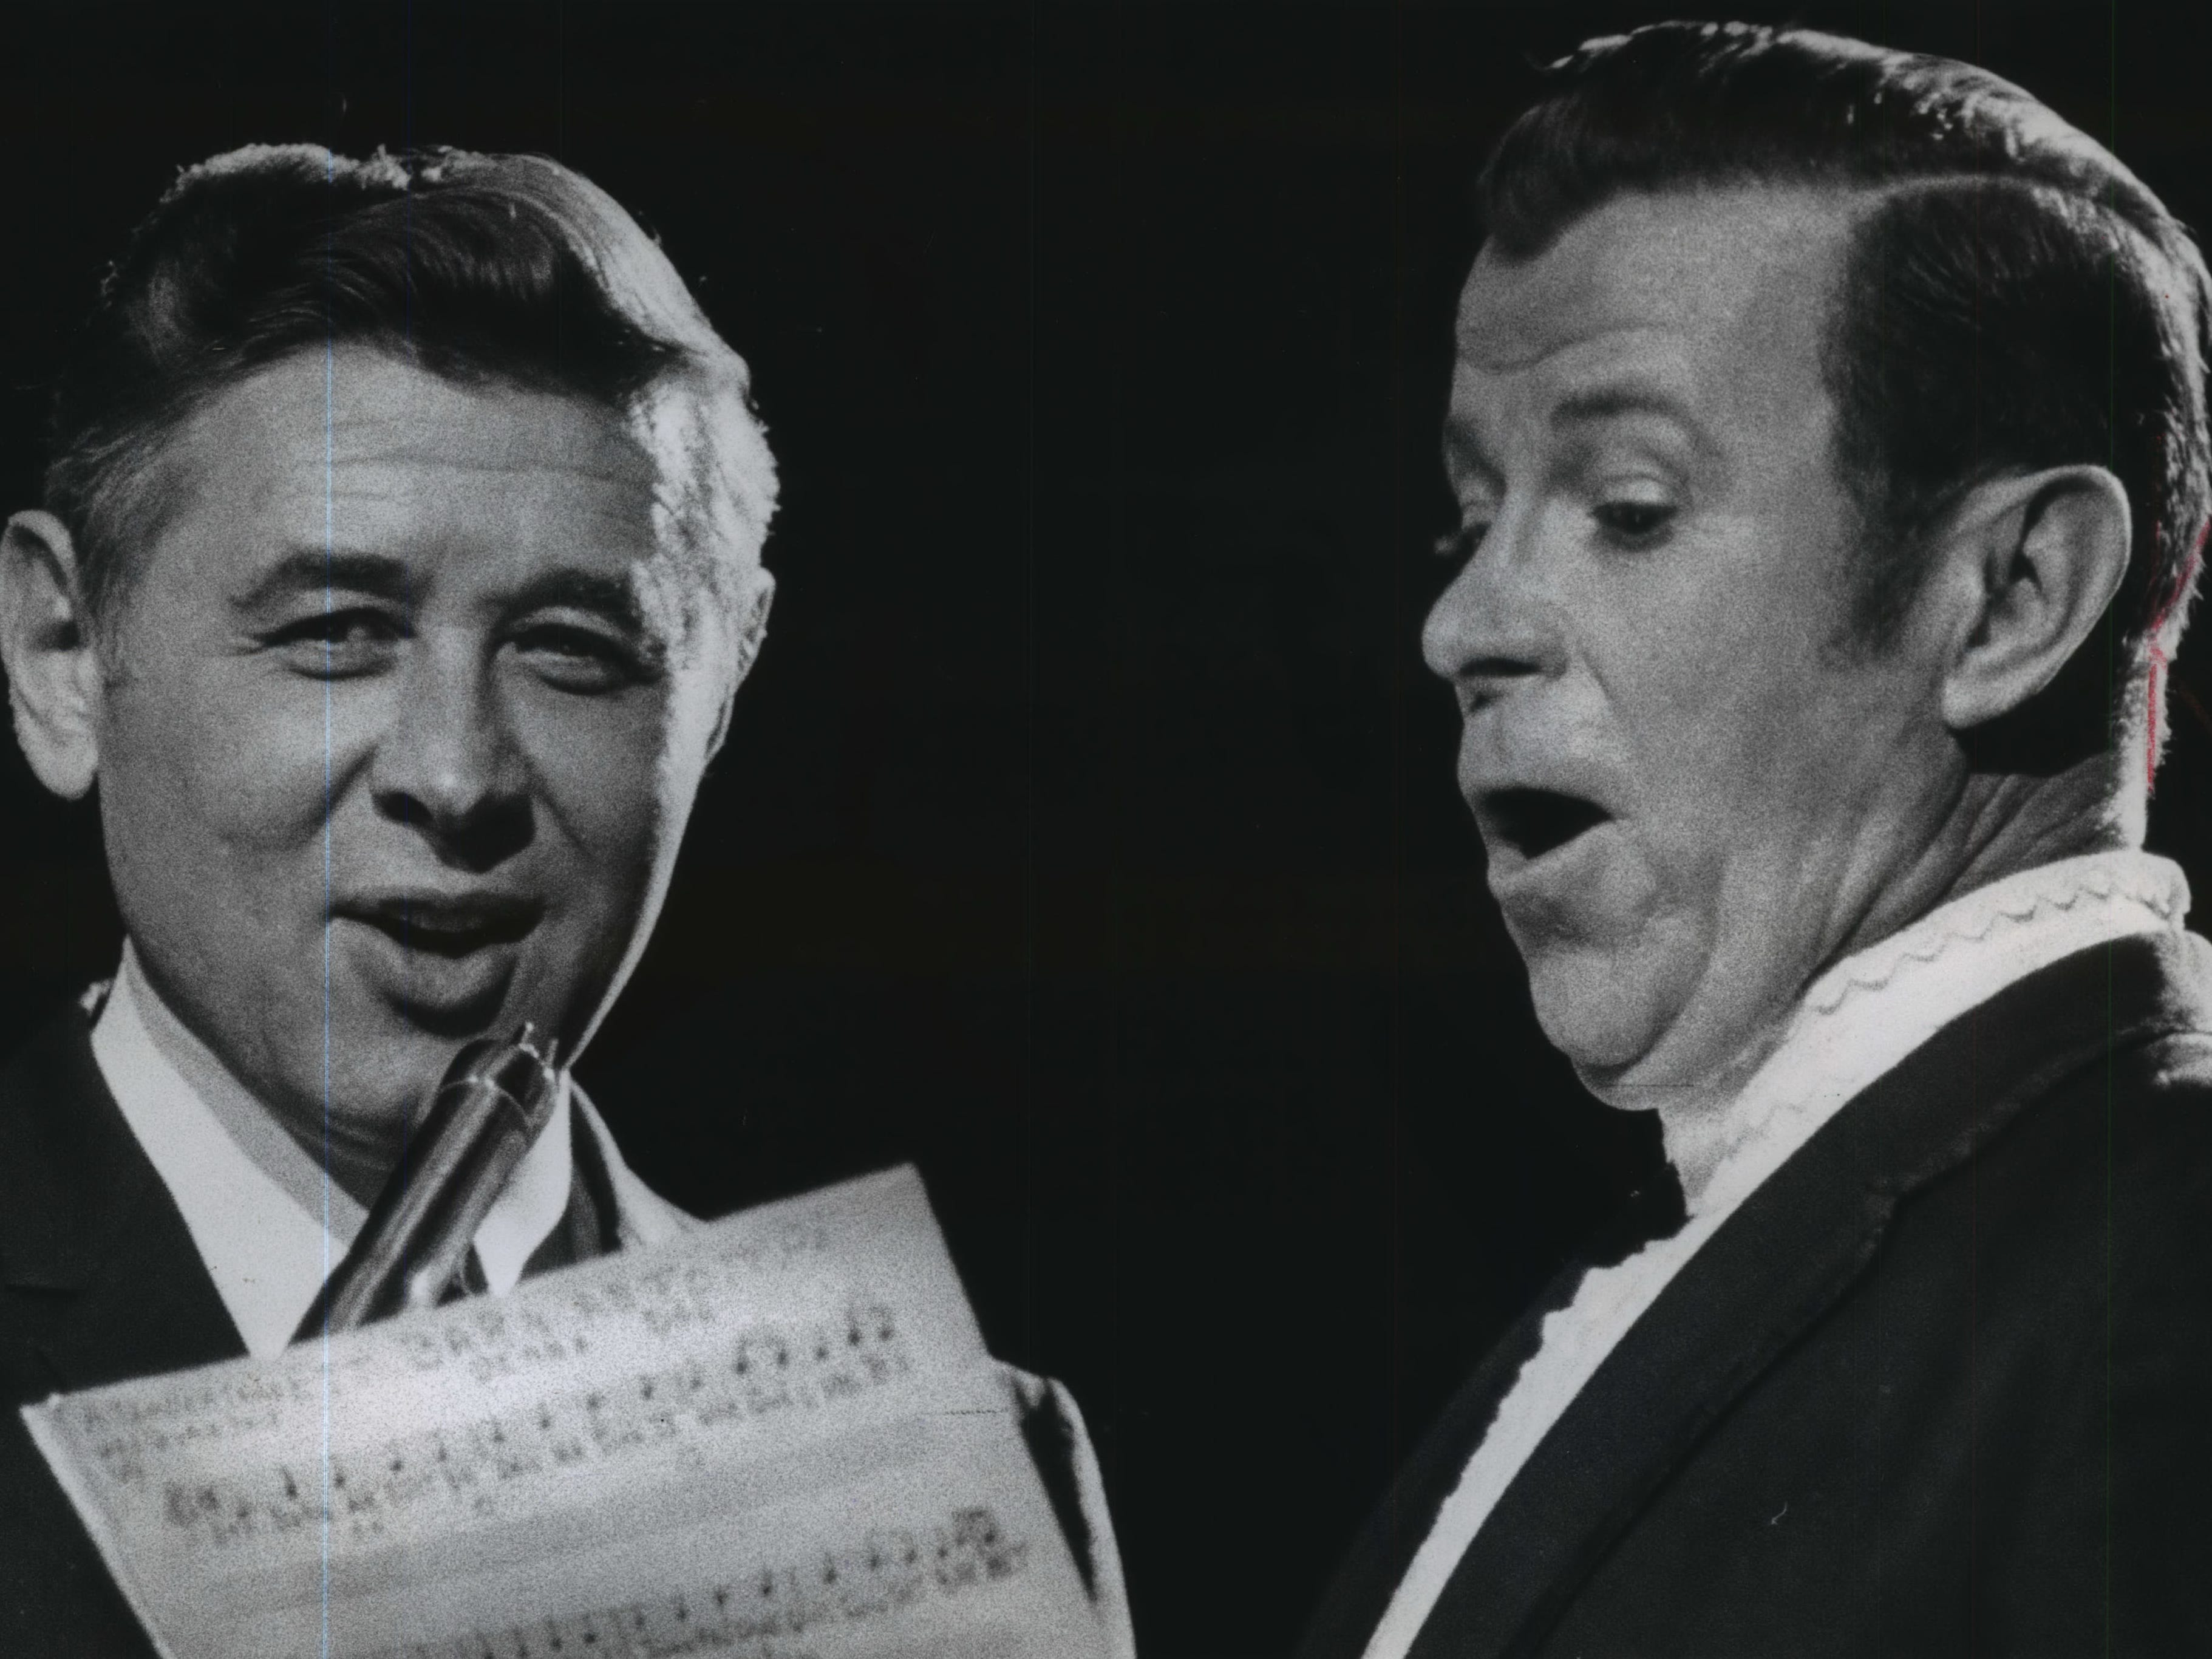 Milwaukee Mayor Henry Maier and singer Dennis Day, one of the stars of Jack Benny's old radio show, join their voices in a German Christmas carol during the city's tree-lighting program on Dec. 1, 1968. Day, a frequent visitor to Milwaukee, was the guest performer on the program, held at the Milwaukee Arena. This photo was published in the Dec. 2, 1968, Milwaukee Journal.